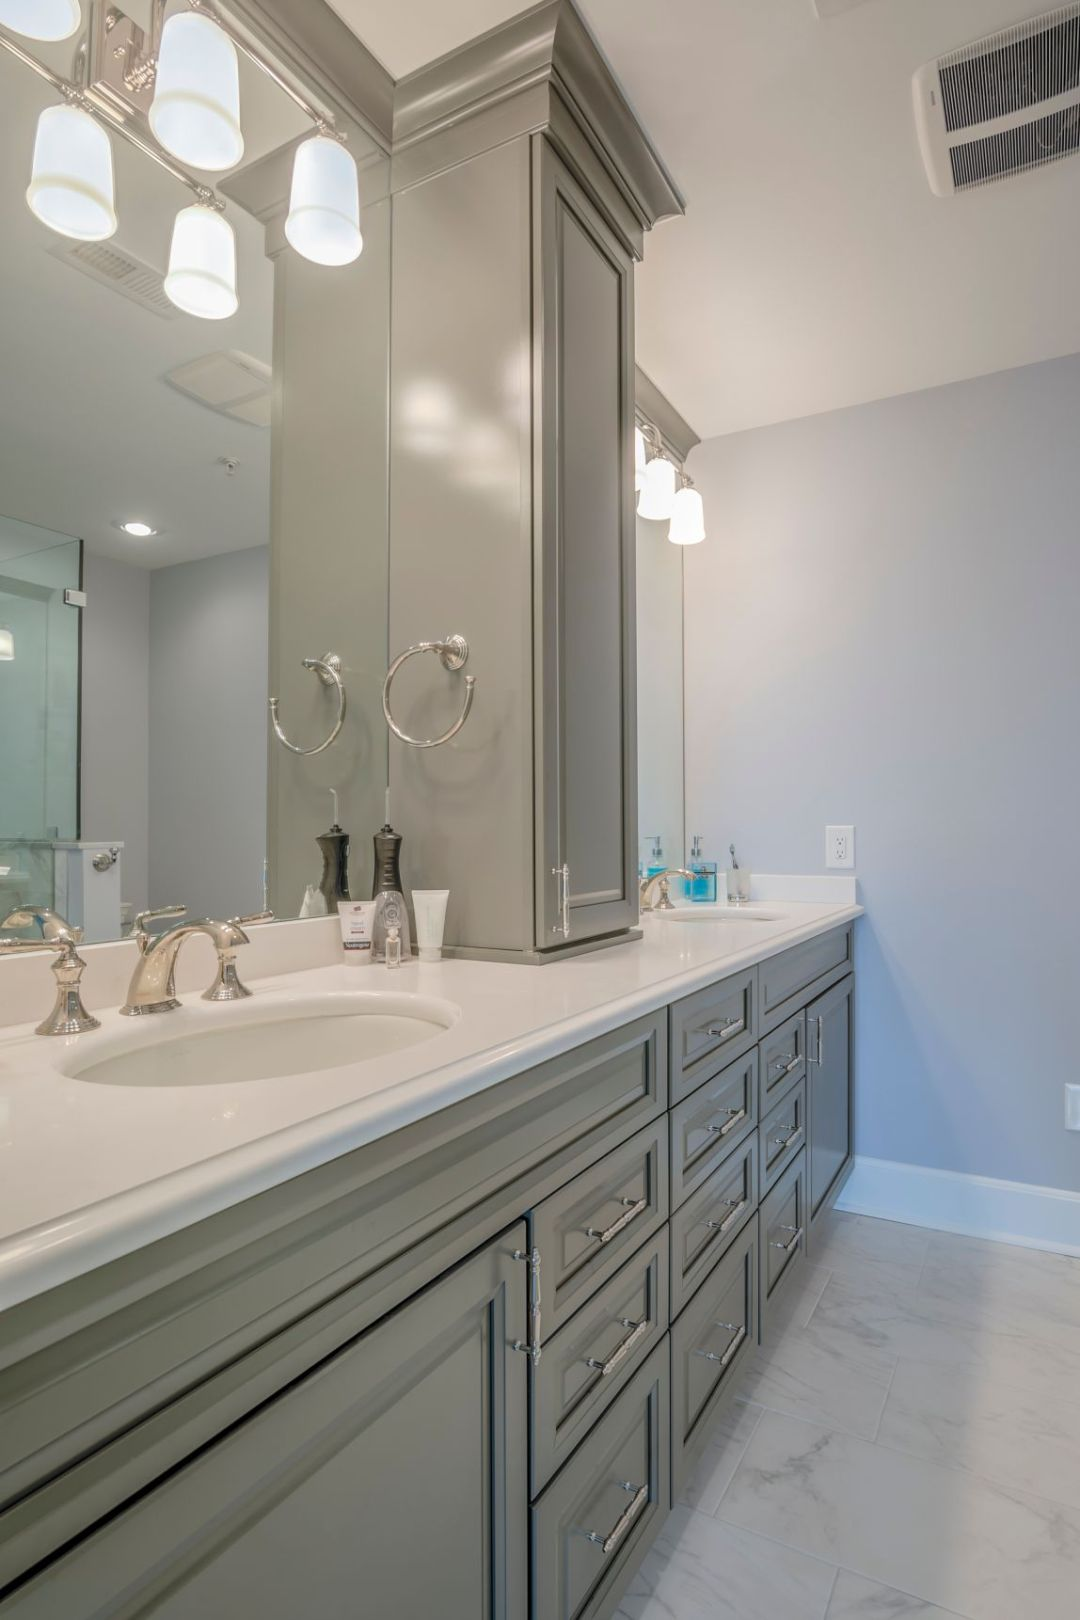 Bathroom Remodel in Kings Grant, Fenwick Island DE with Brushed Steel Faucet and Dual Sinks